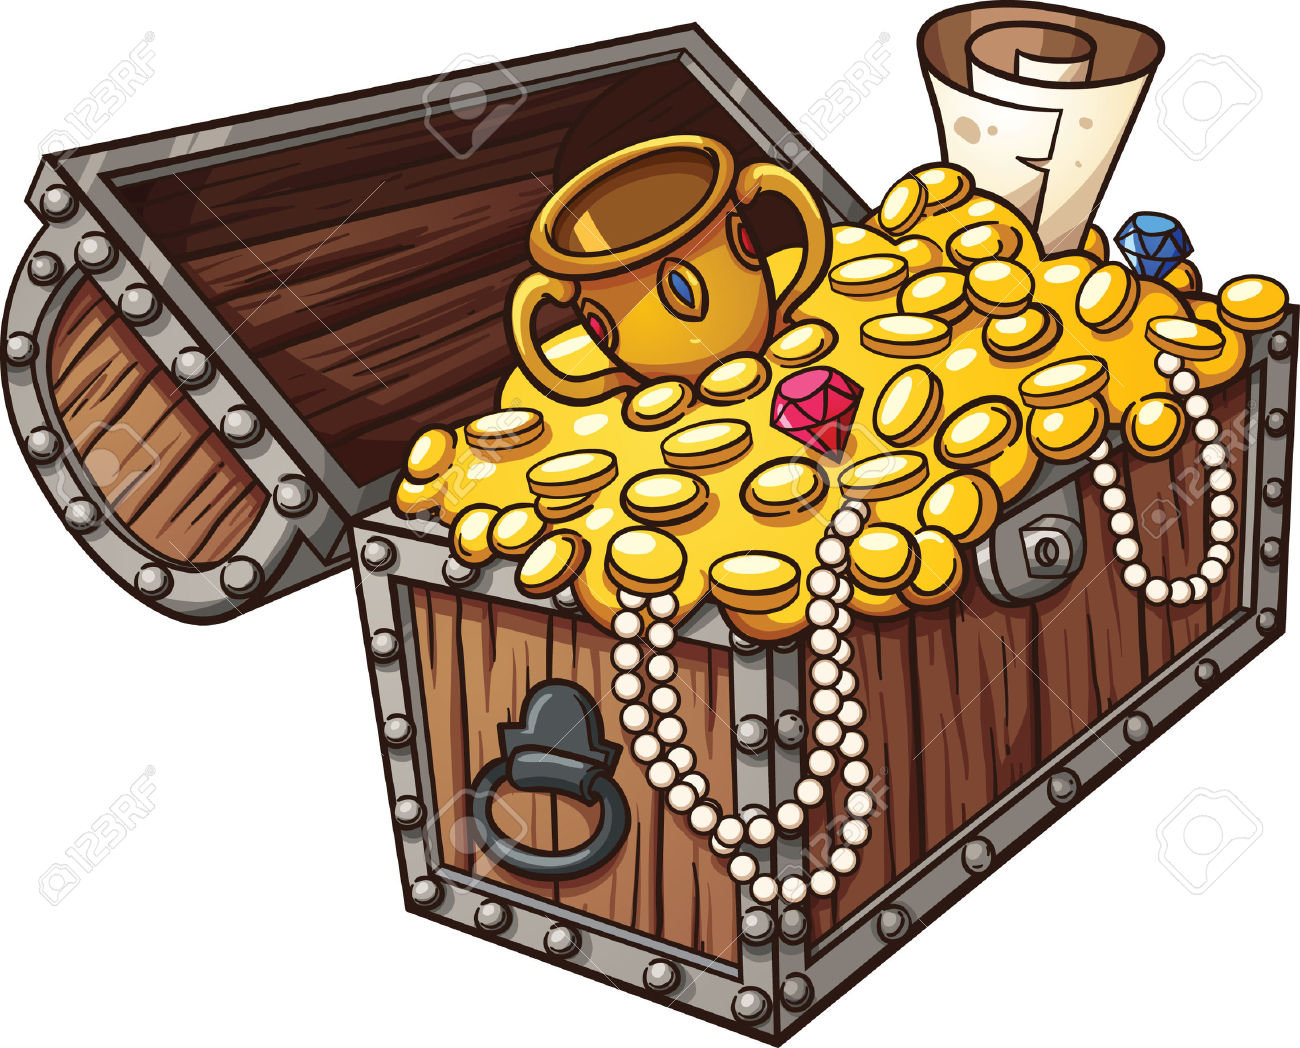 Treasure clipart - Clipground